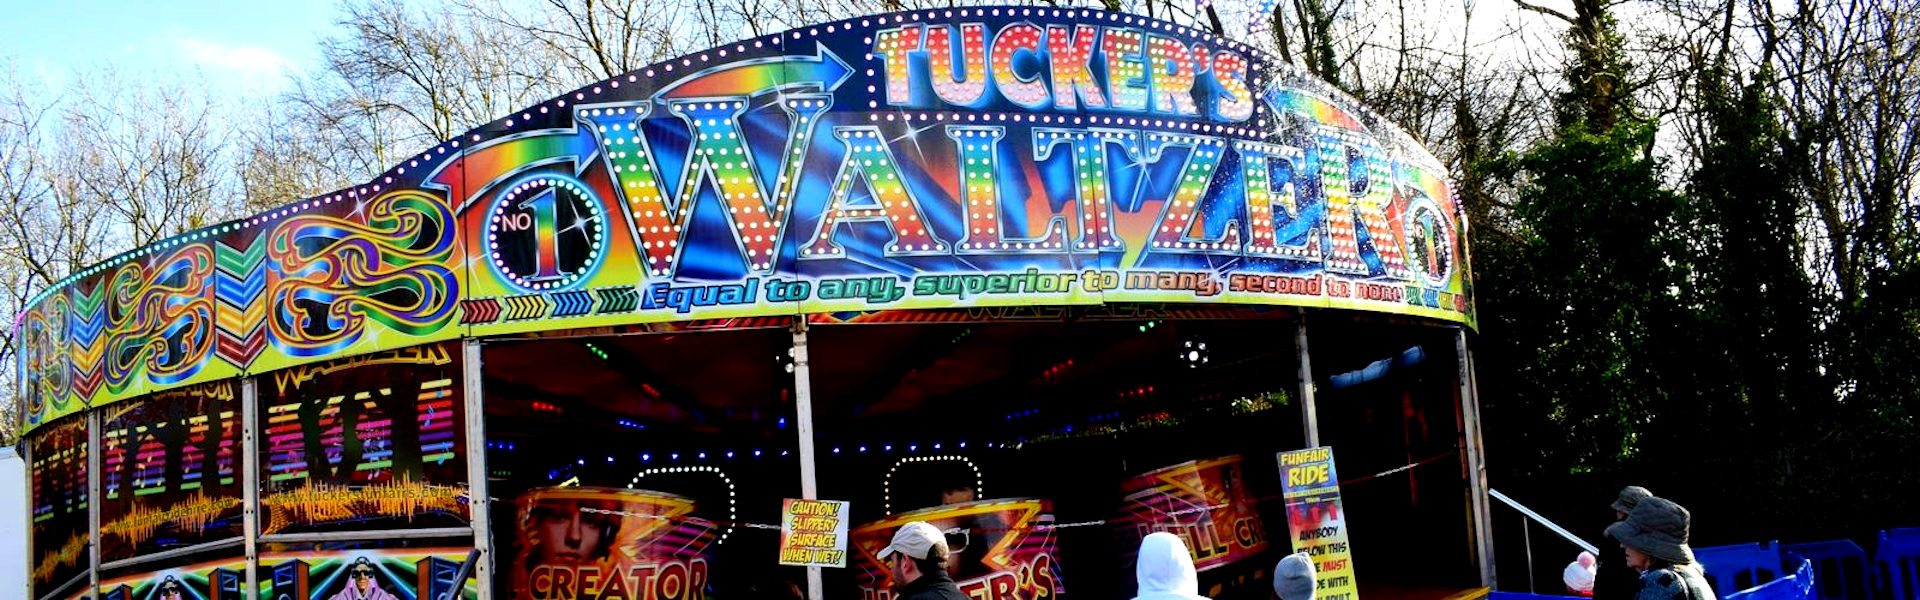 Photograph of Funfair Ride Hires Waltzer